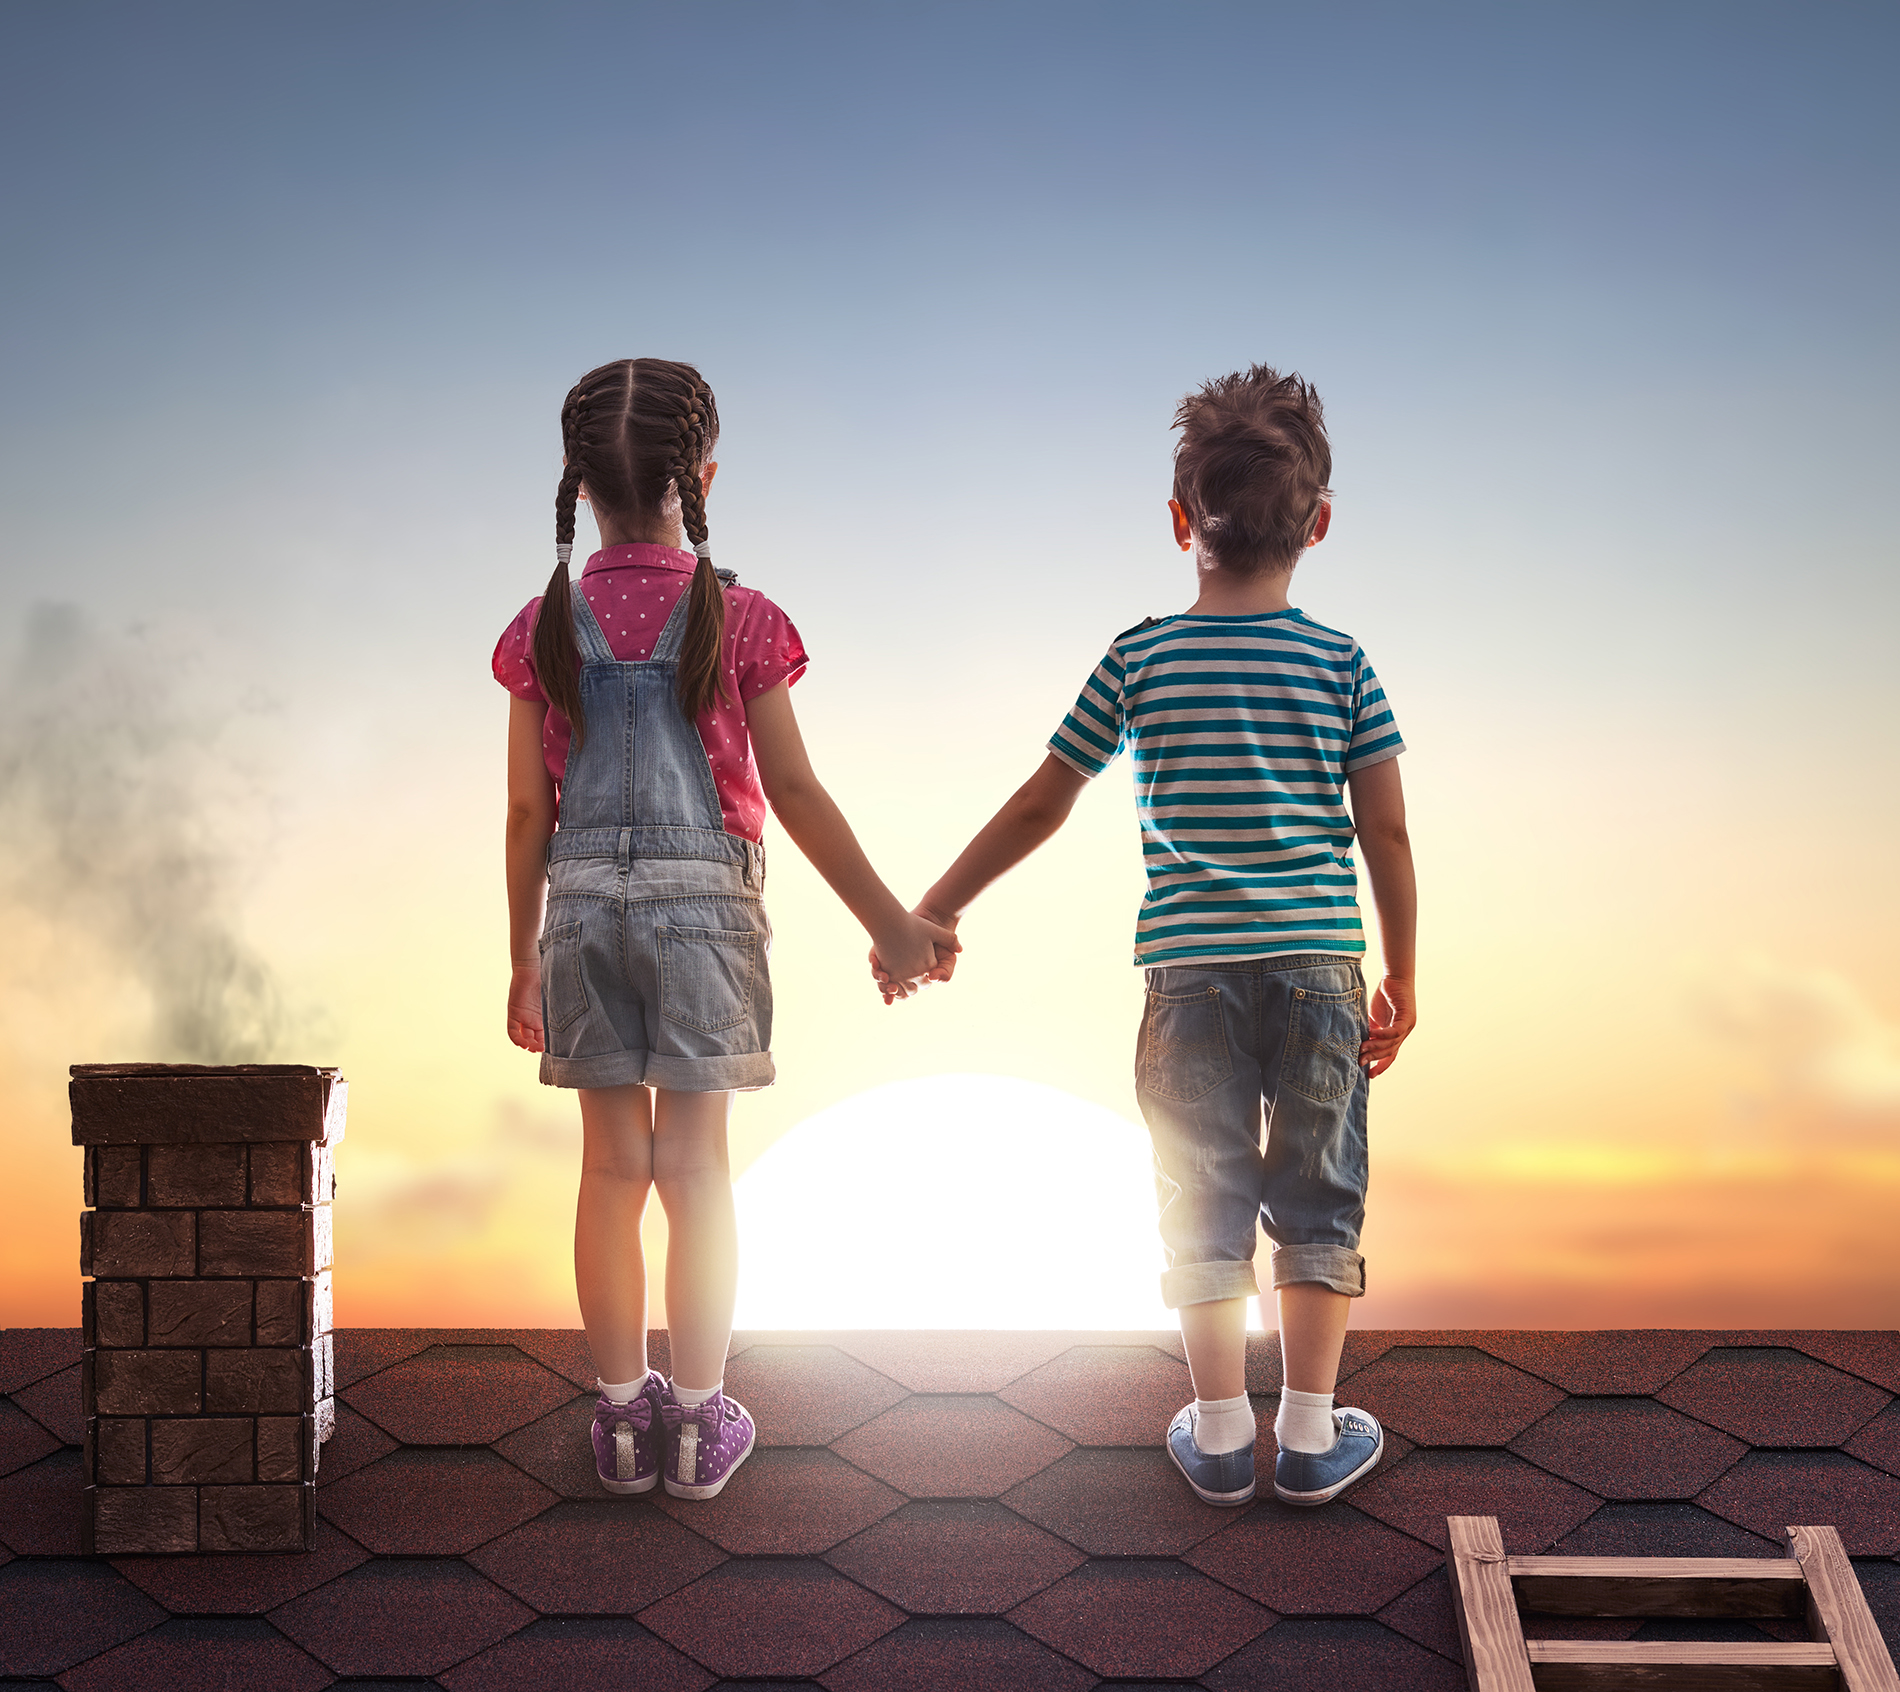 Boy and girl 4833 holding hands on the roof 54402